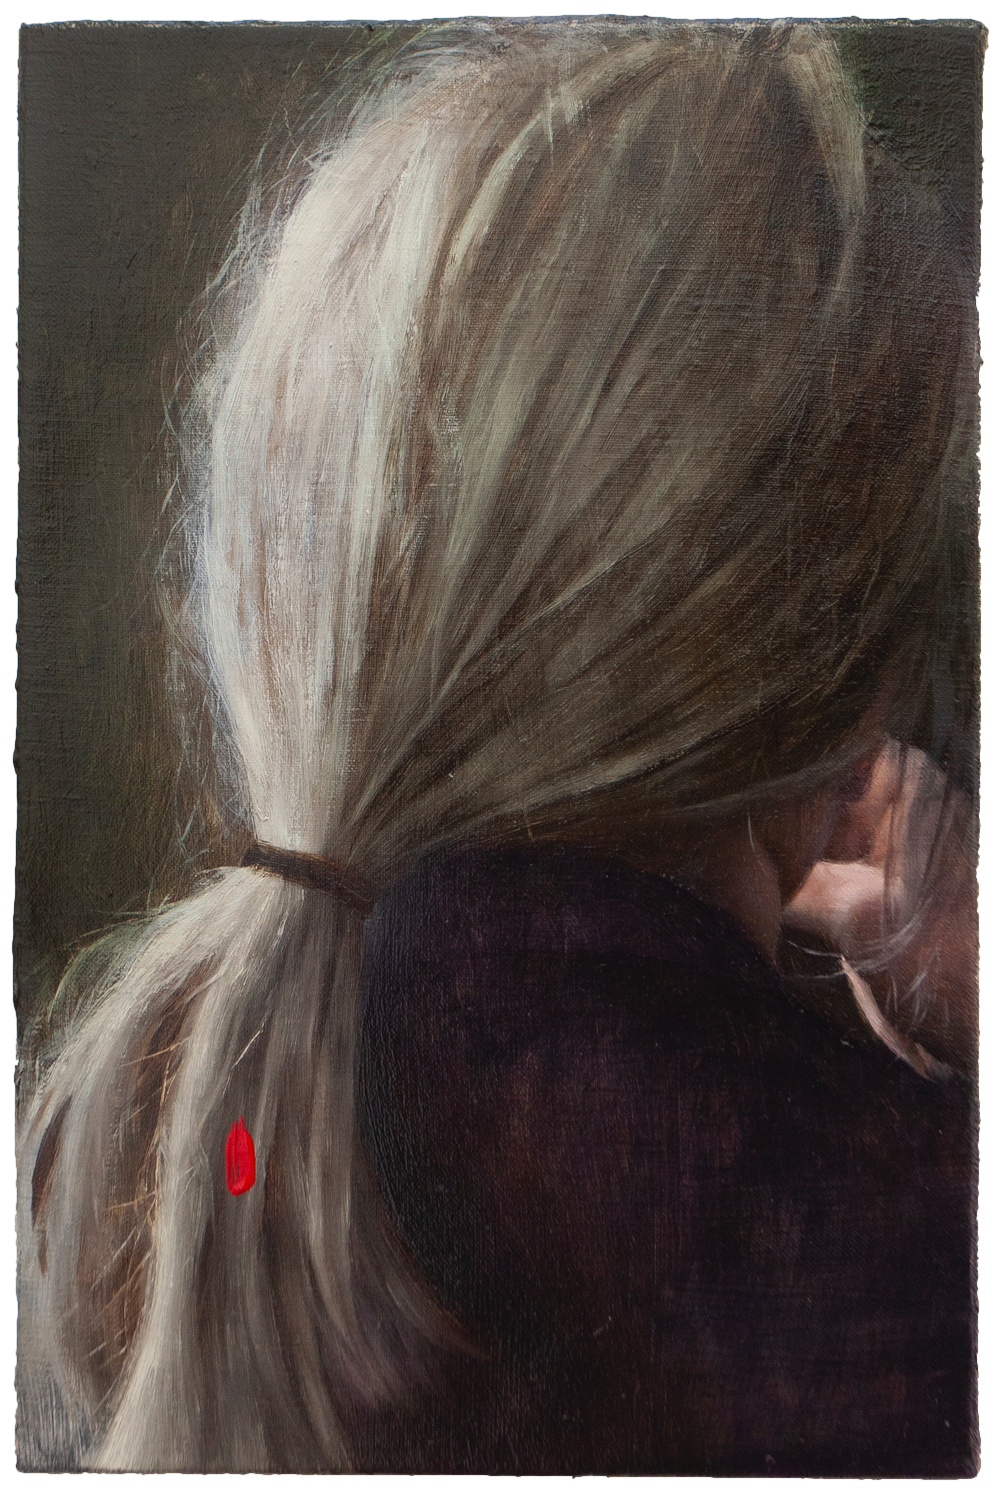 'PORTRAIT OF LADY WITH RED FLEECE ON HER BRAID'-LINGRUI ZHANG-SAINT MAISON